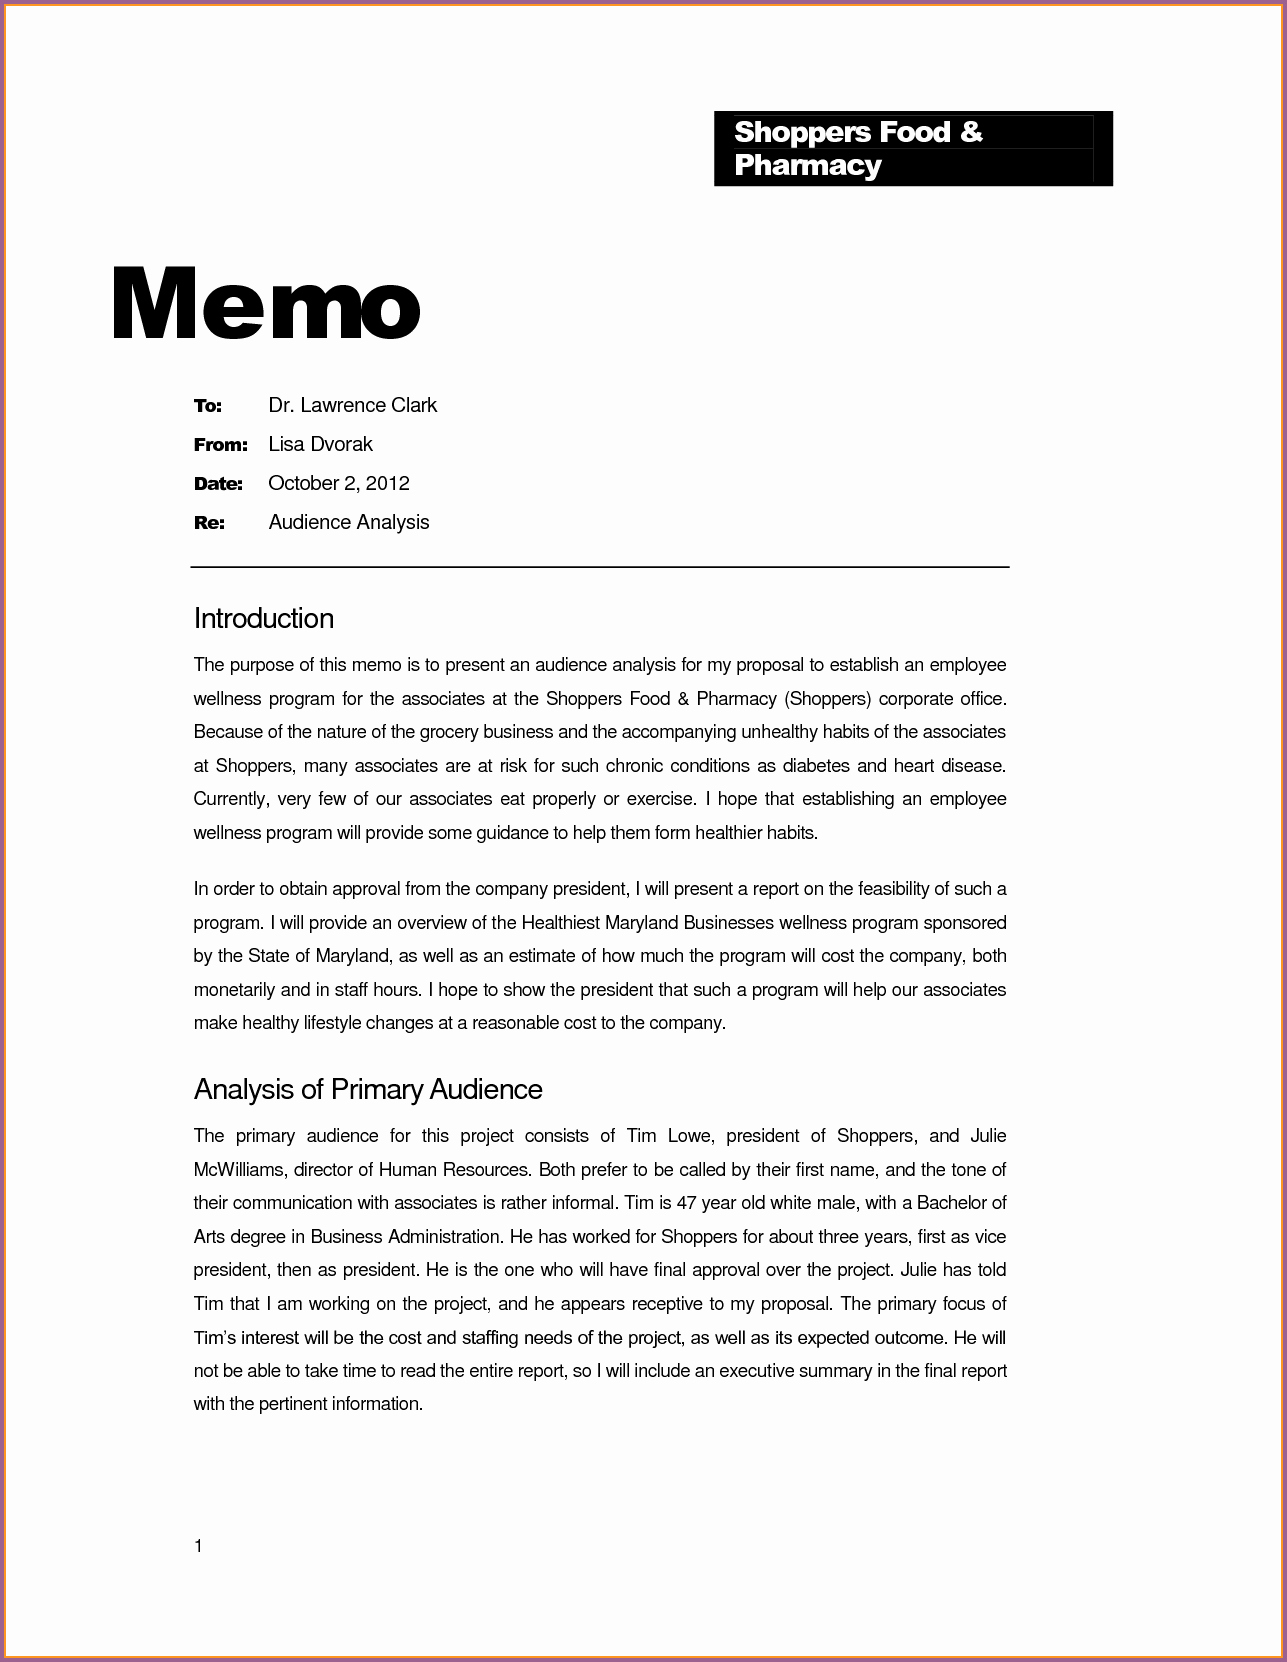 Ms Word Memo Templates Free Beautiful Memo Templates for Word Portablegasgrillweber